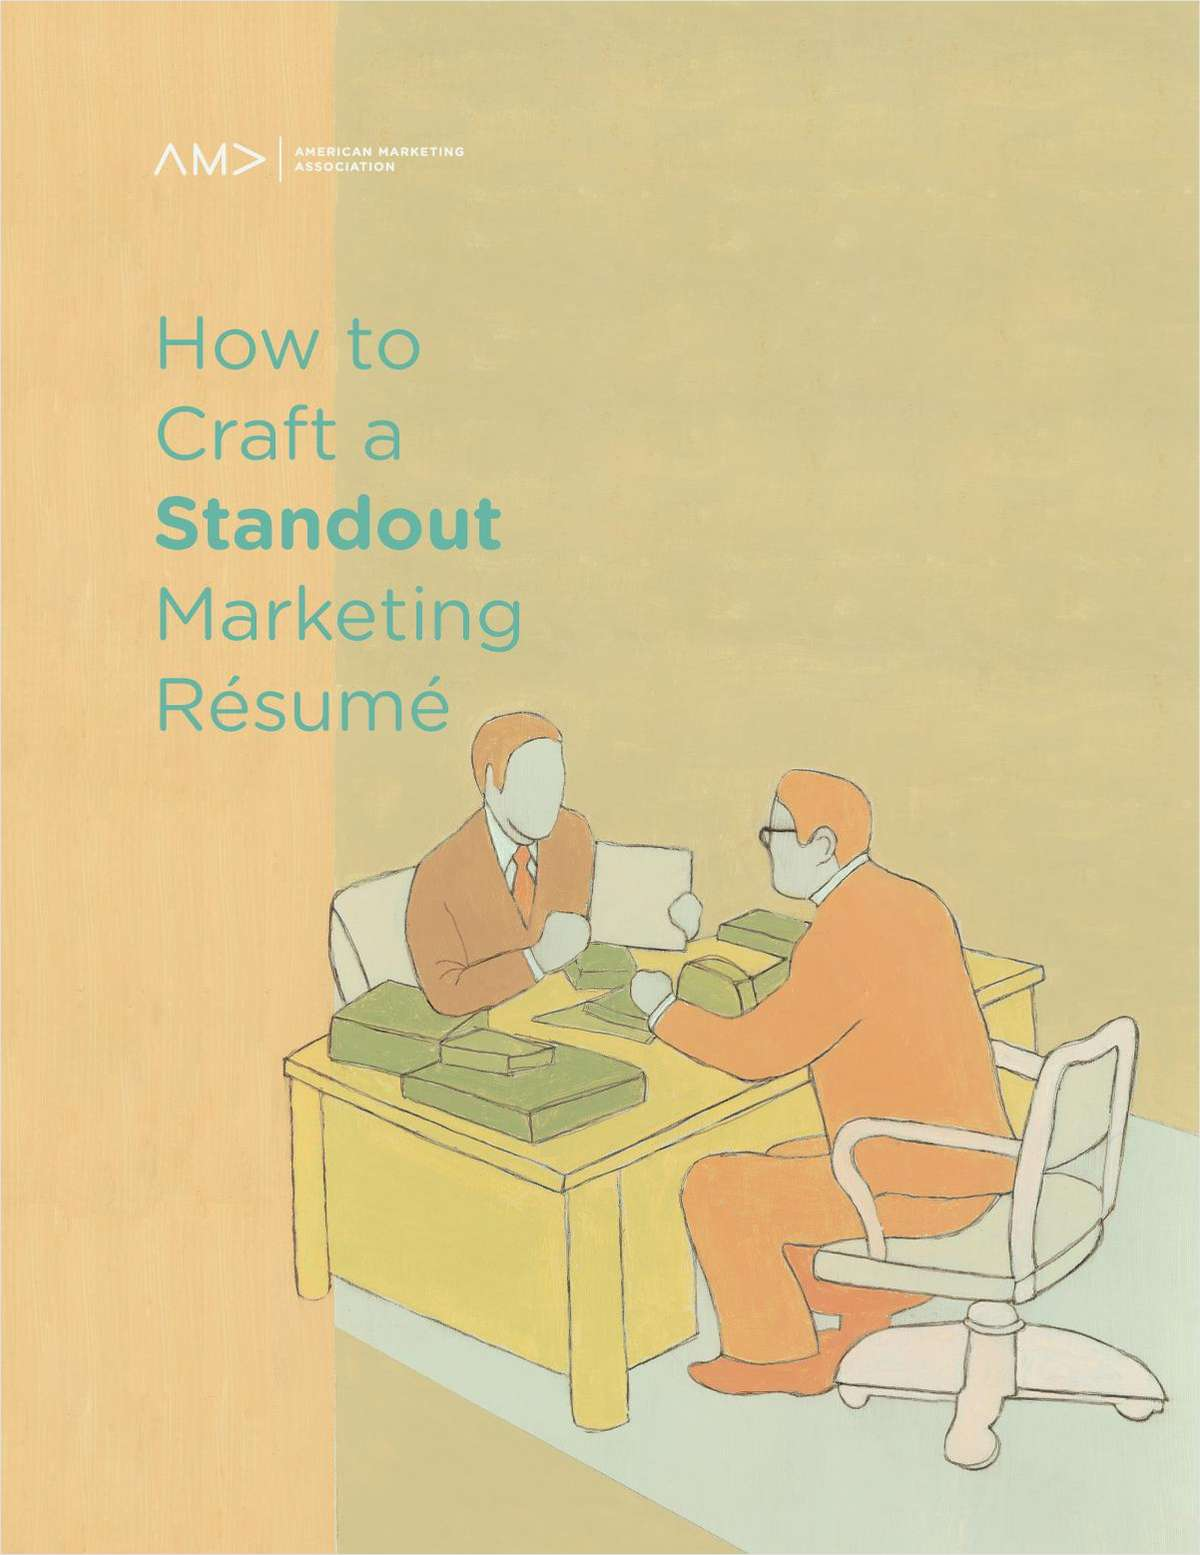 How to Craft a Standout Marketing Résumé